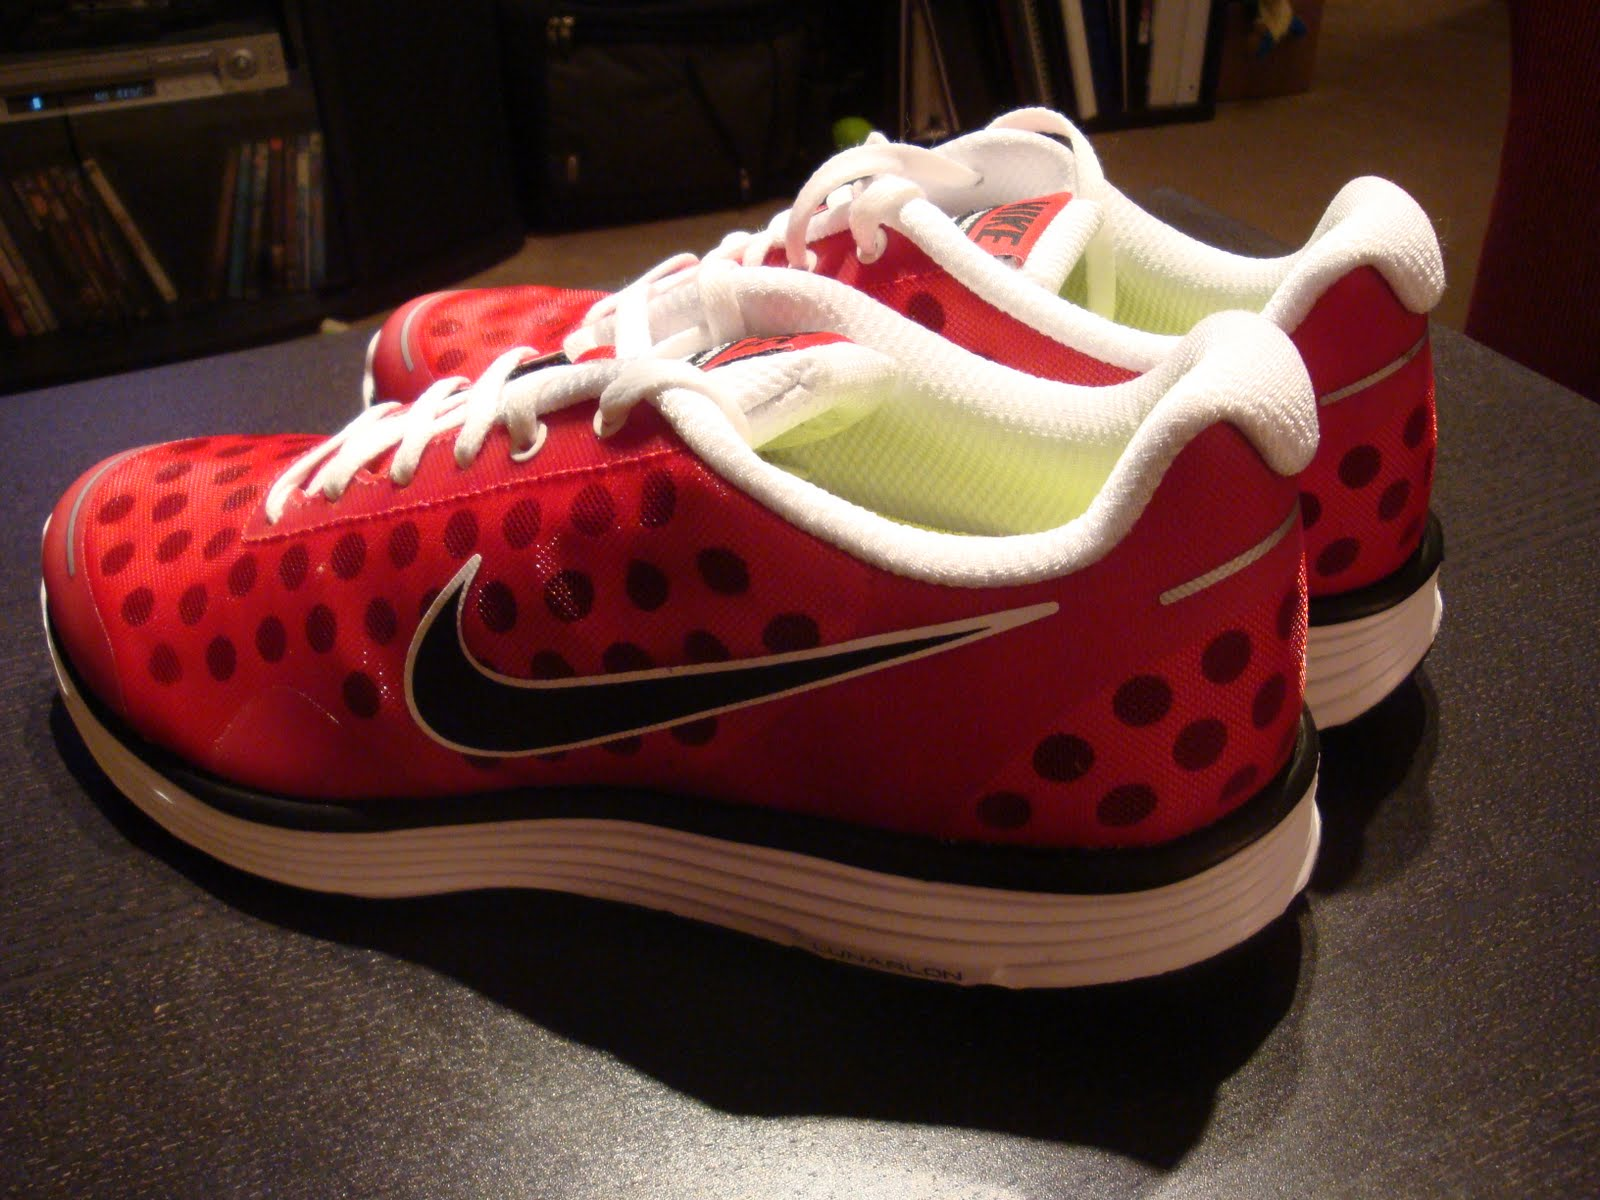 0e2e4e244854 The LunarSwift+ 2 strives to do what the other shoes in the Lunar series  have done